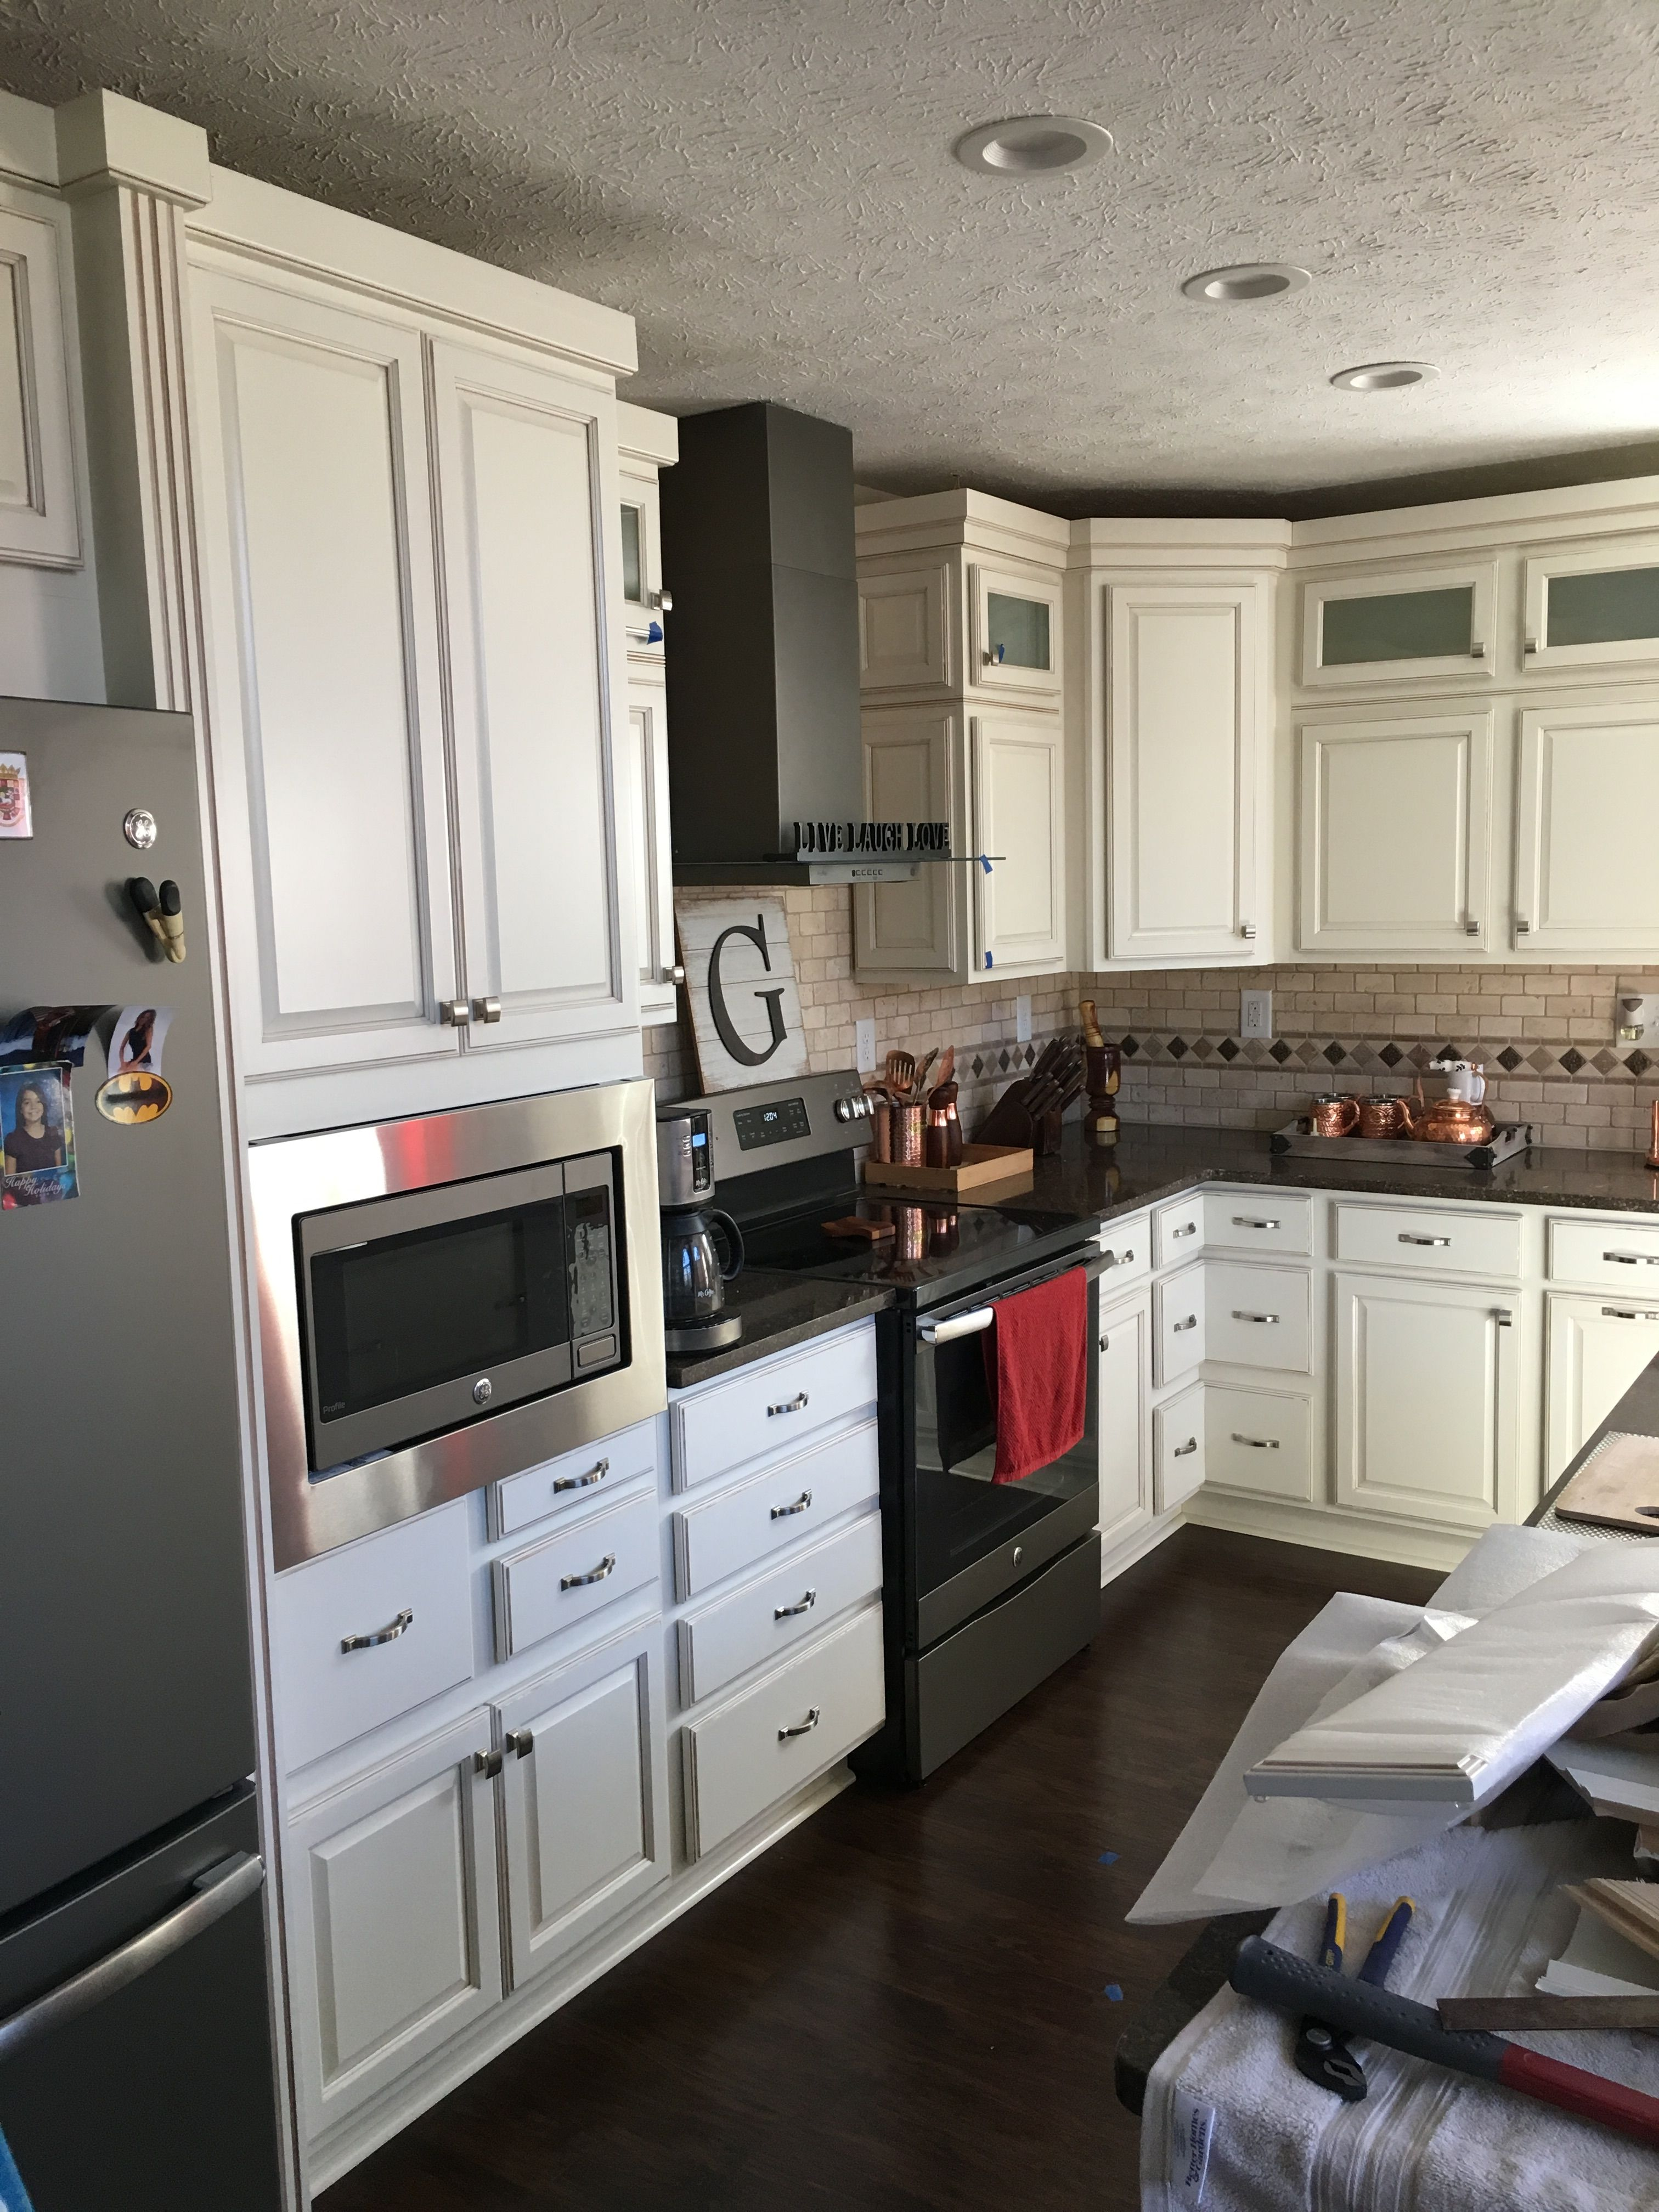 Coconut Kitchen Remodel Installing Cabinets Installing Kitchen Cabinets Kitchen Cabinet Remodel